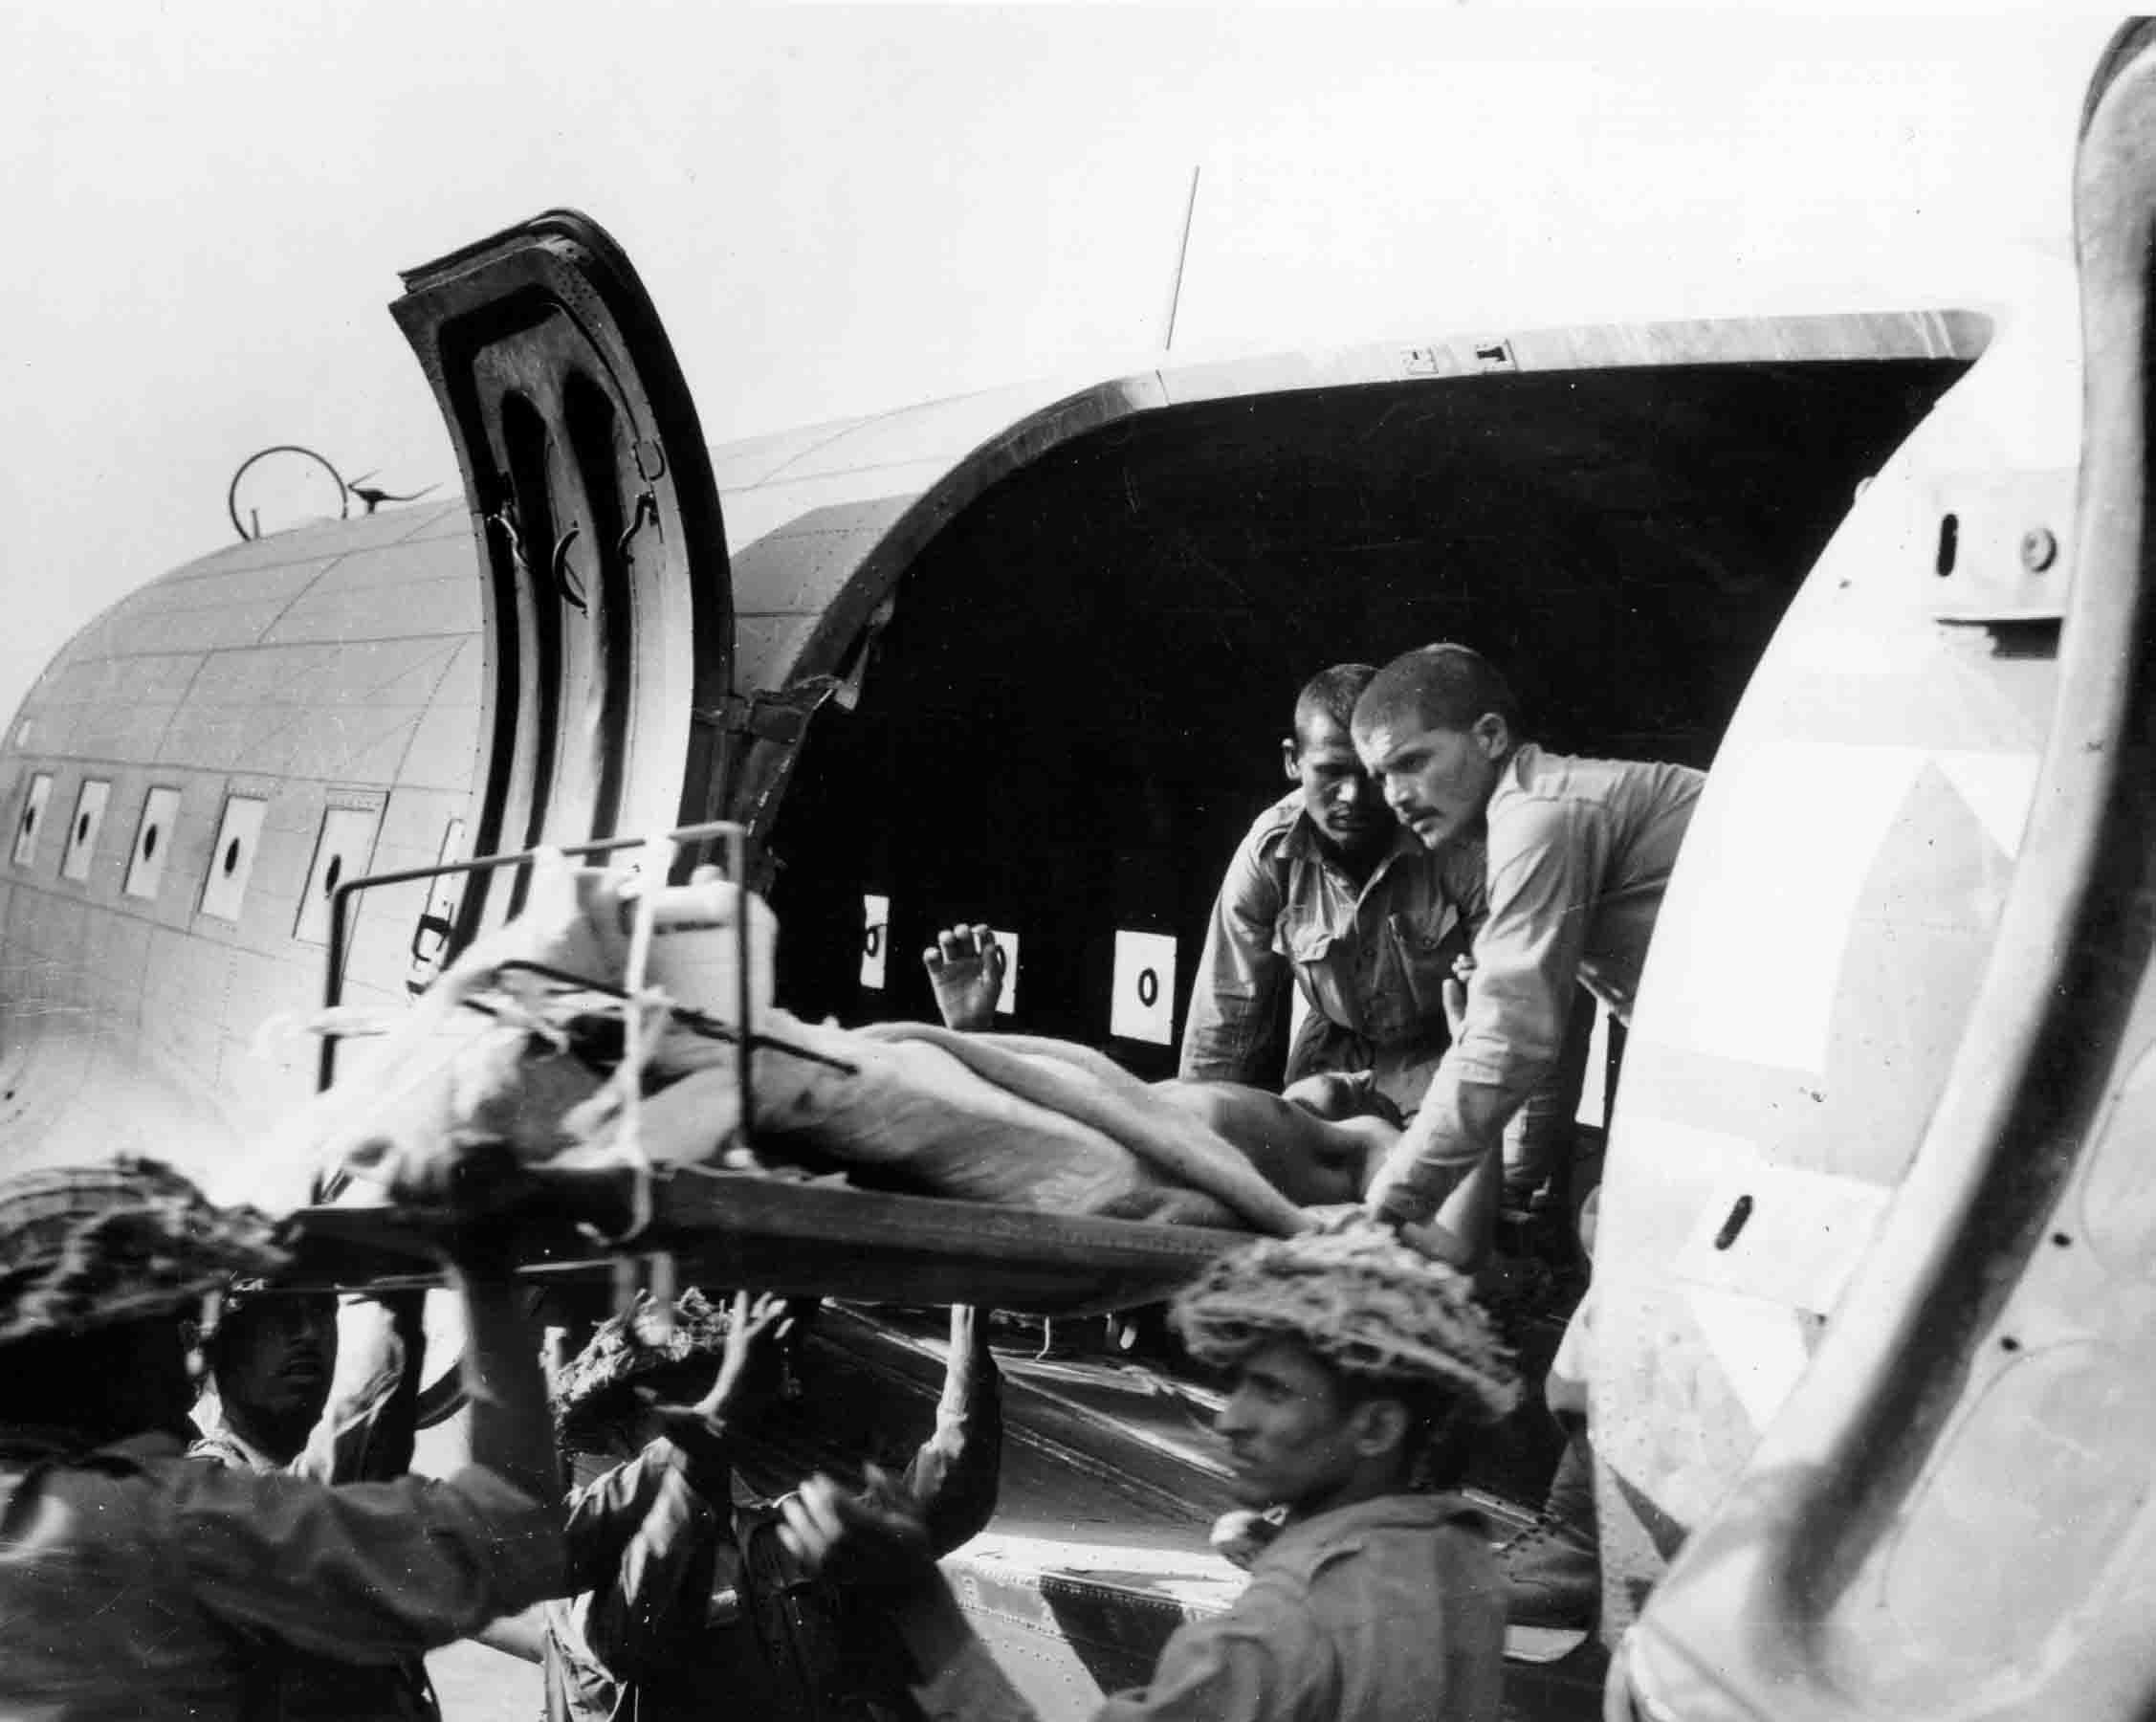 Stretcher-bearers carefully lift seriously wounded out of a USAAF C-47 of the 1st Air Commando Group, Burma, 1944 (RAFM PC71/19/1540)